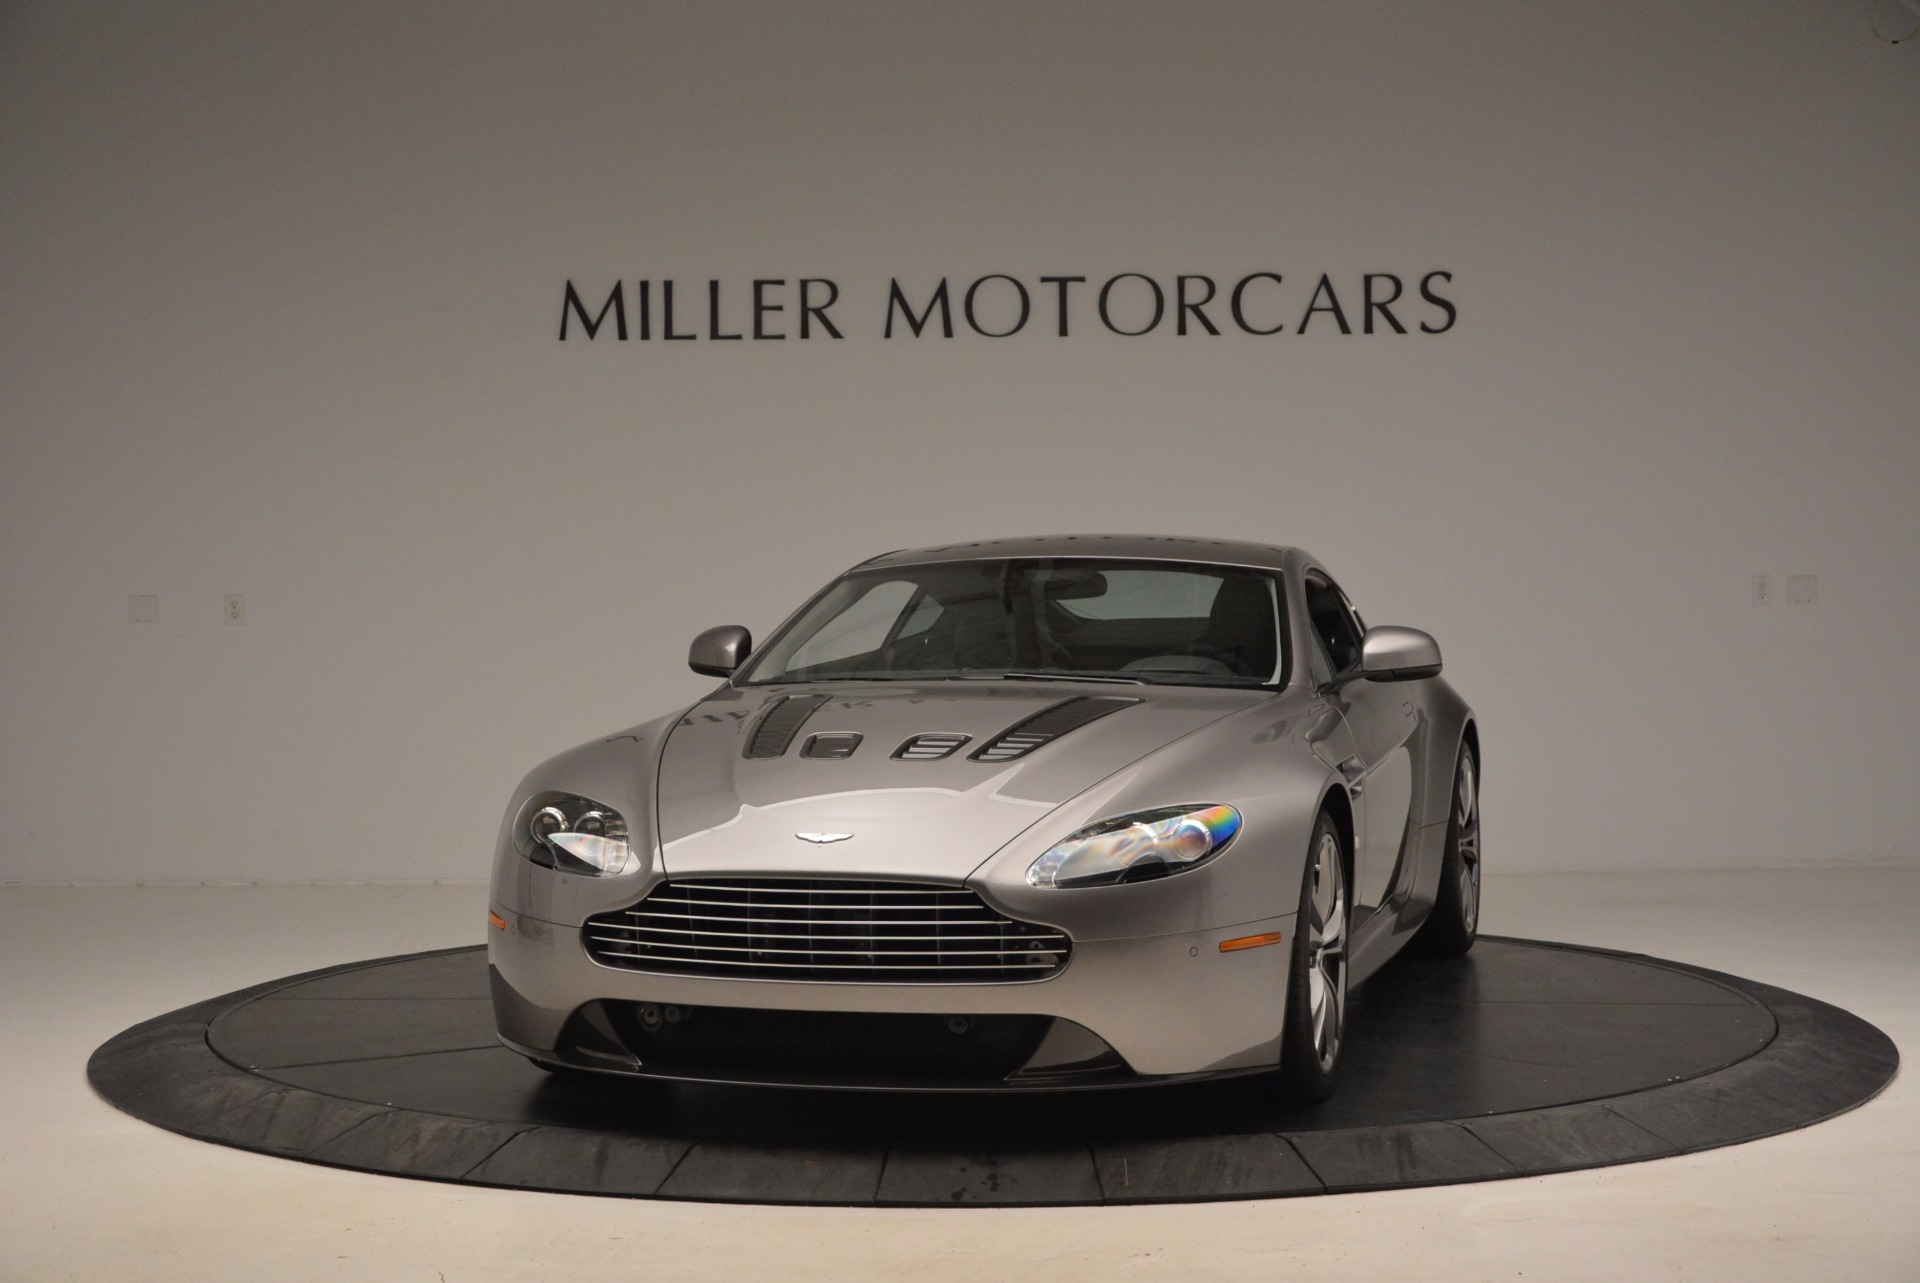 Used 2012 Aston Martin V12 Vantage for sale Sold at Aston Martin of Greenwich in Greenwich CT 06830 1